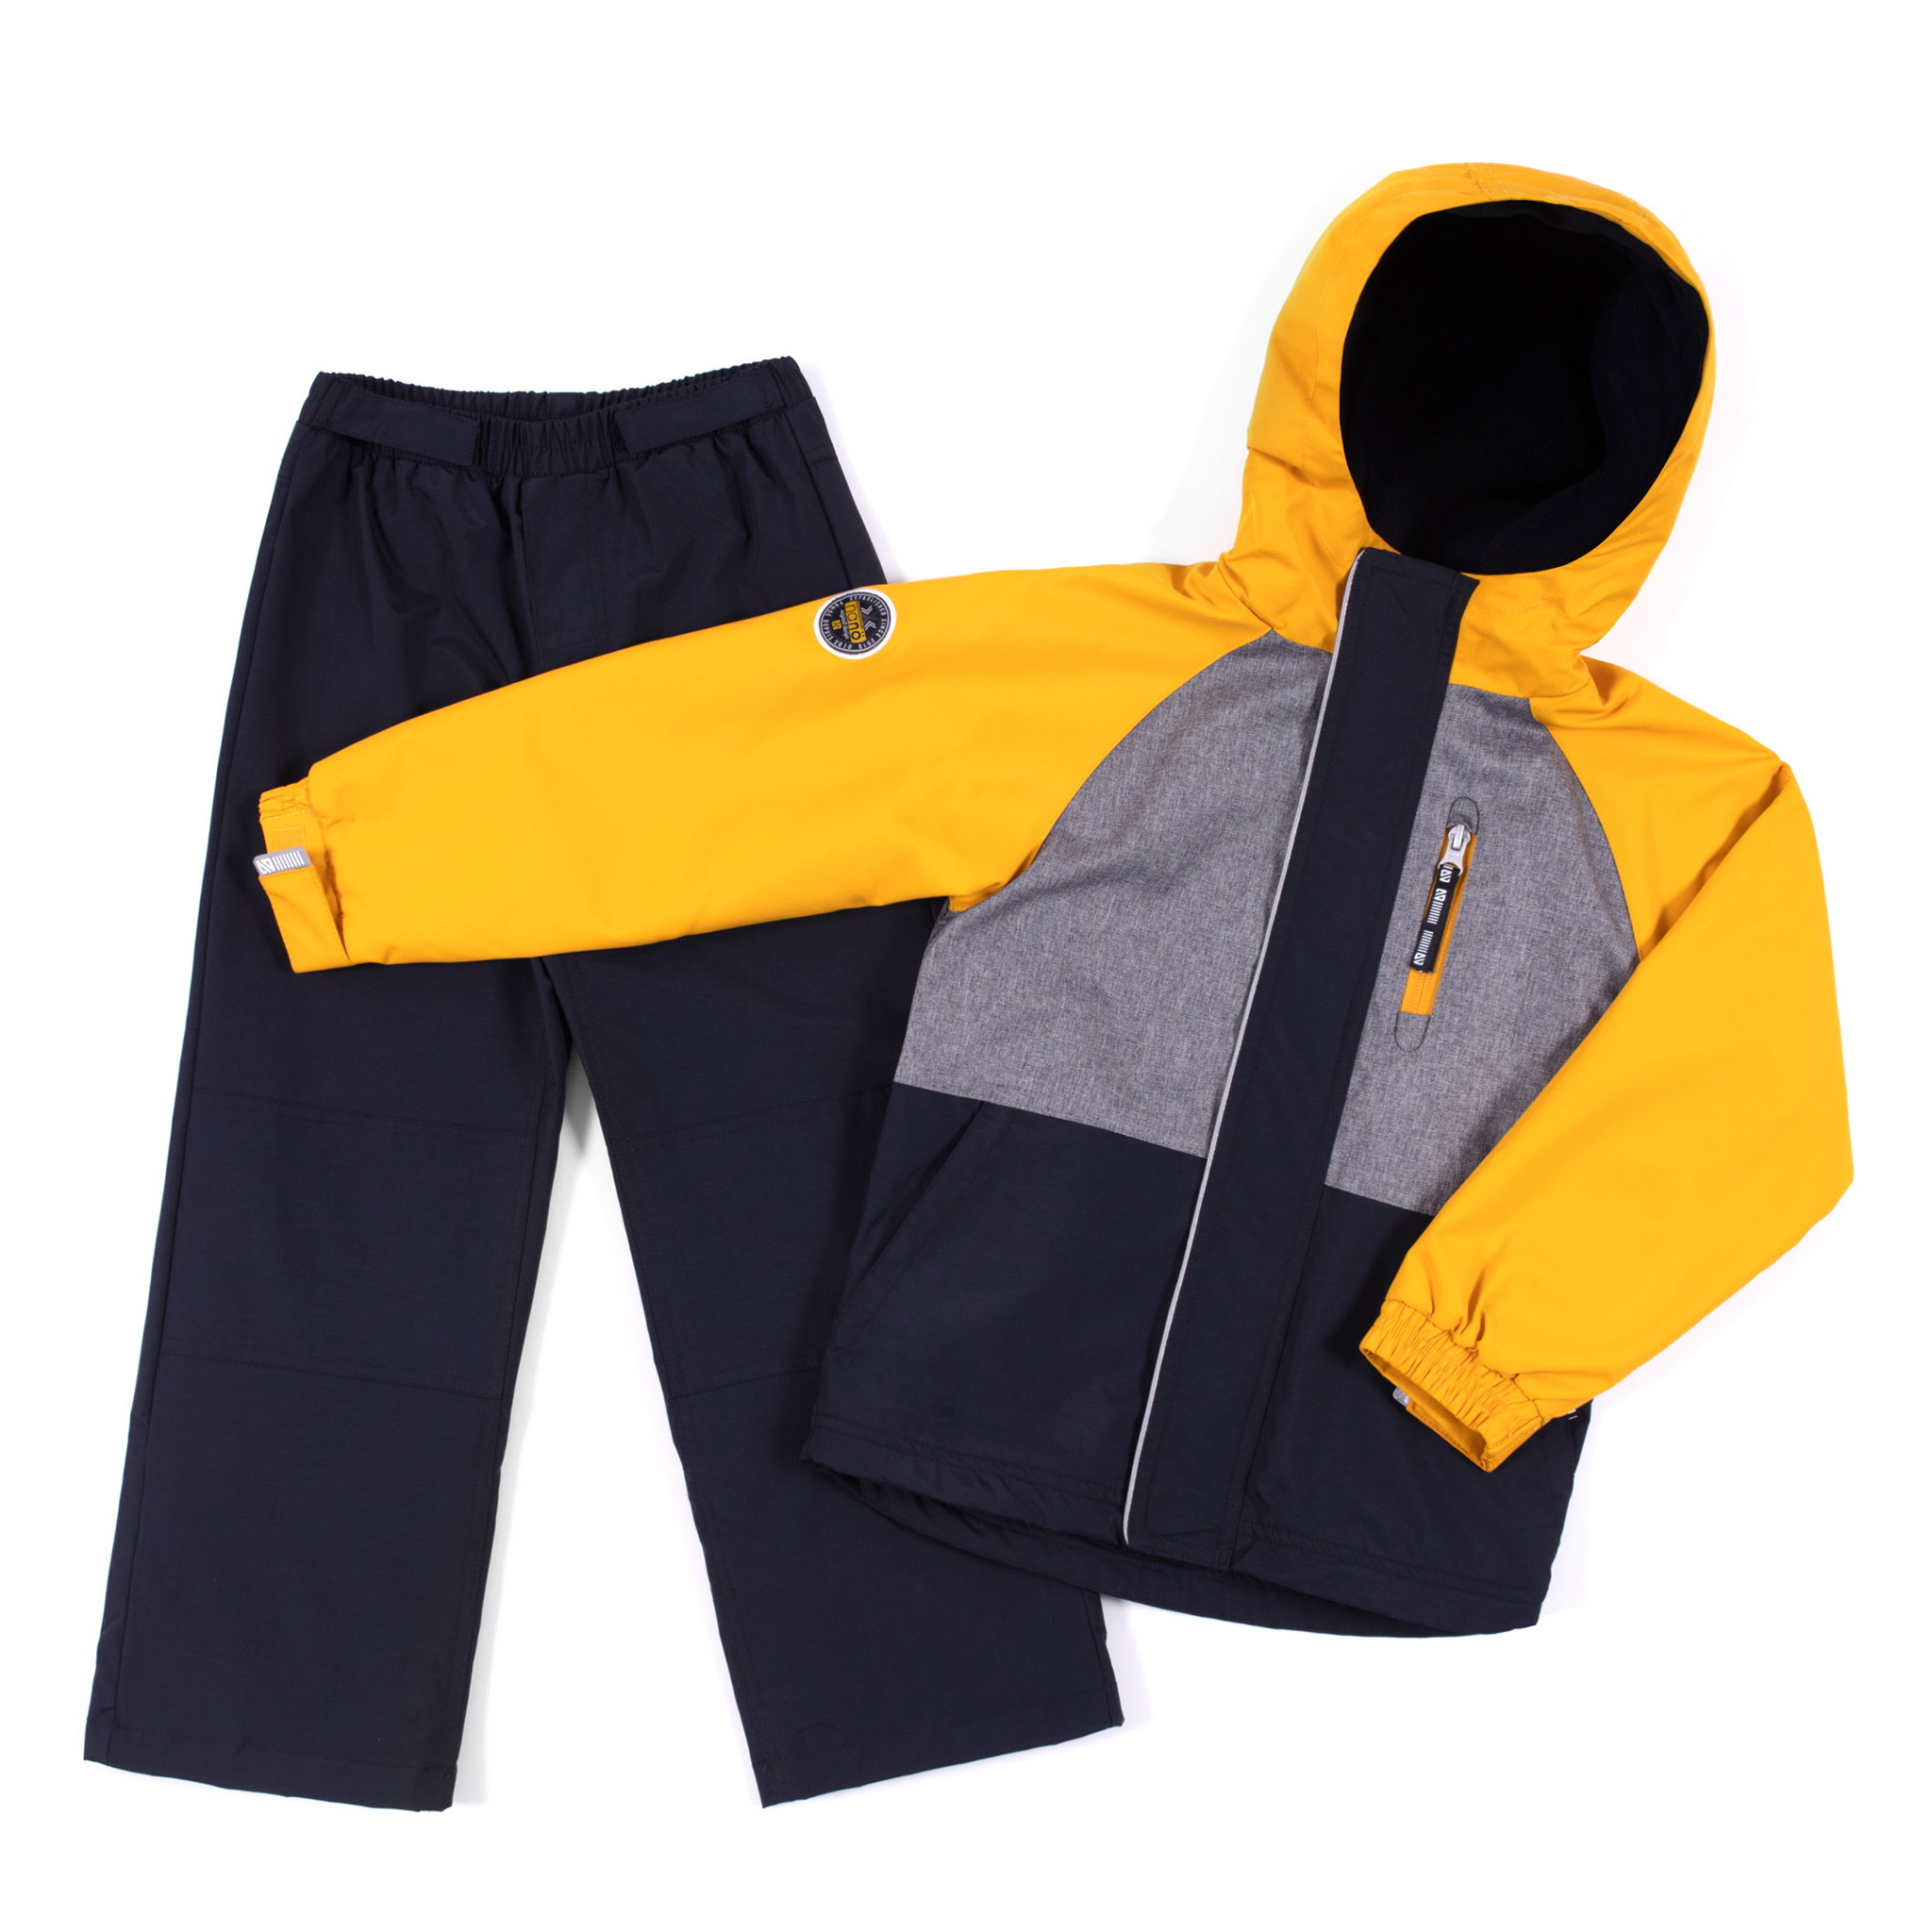 2 pcs outerwear Milan - Yellow - Boys